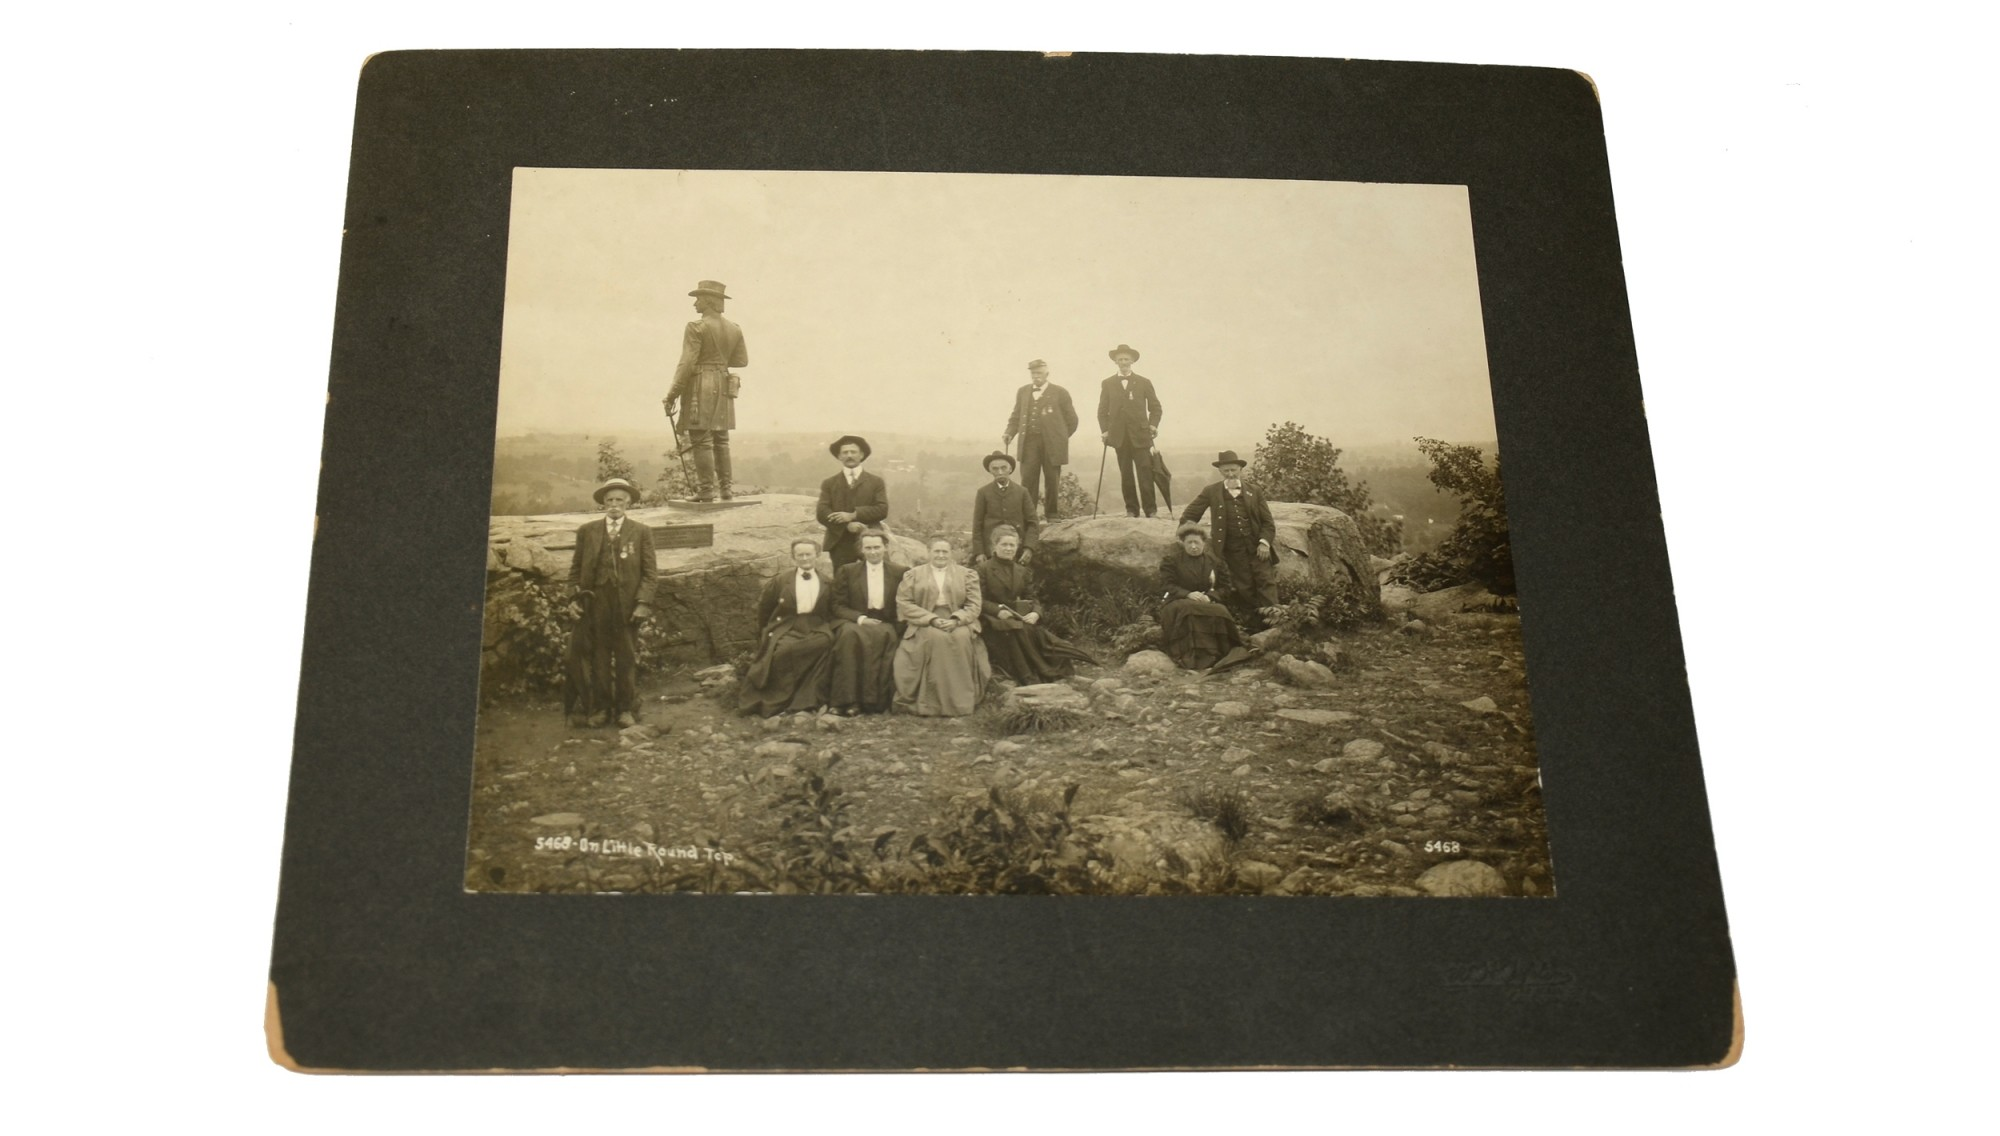 LARGE TIPTON CABINET PHOTO OF VETERANS GROUP ON LITTLE ROUND TOP